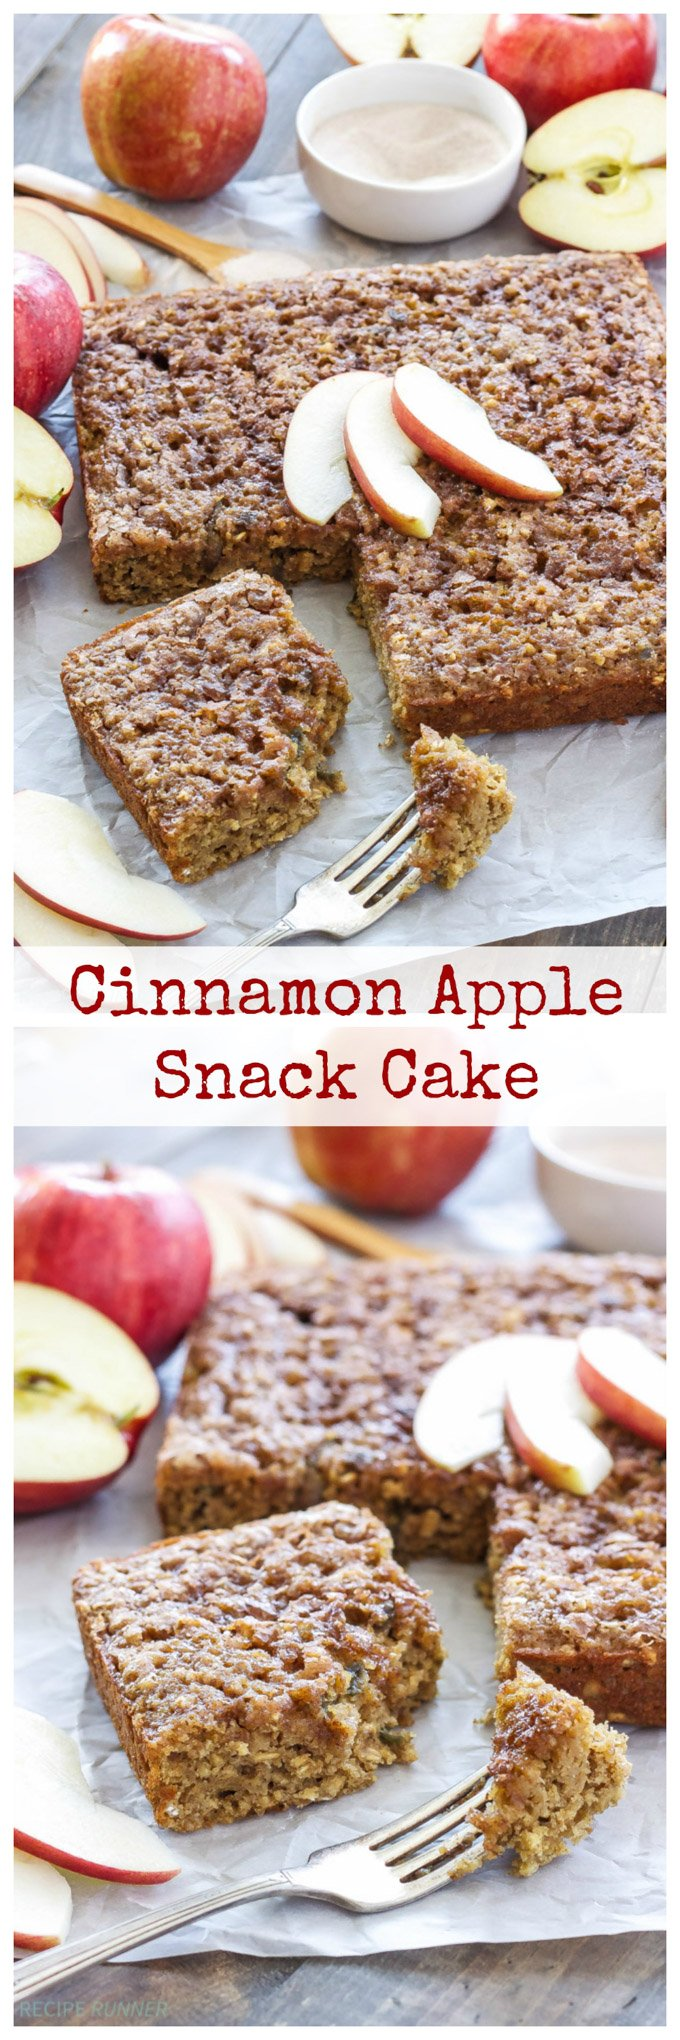 Cinnamon Apple Snack Cake   Perfectly moist and full of apples, this is sure to be your favorite fall snack cake!